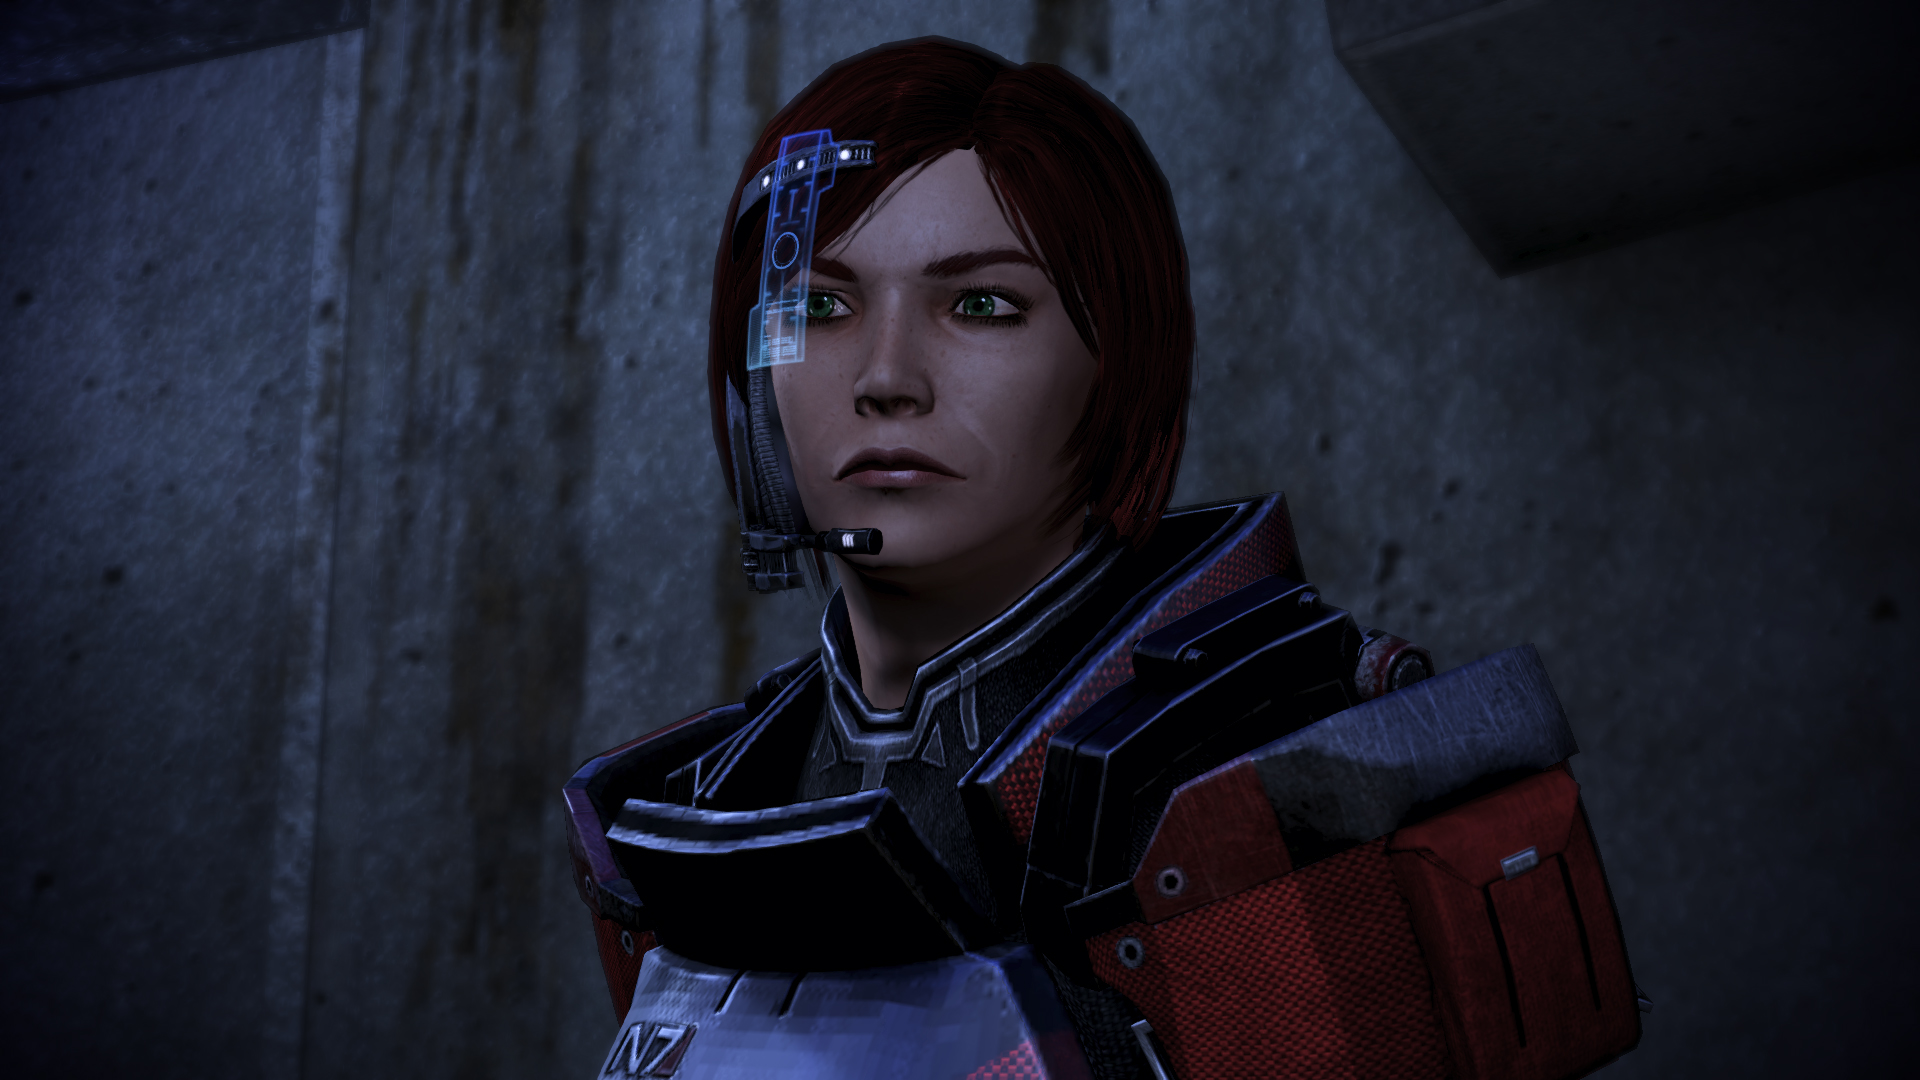 Clover Shepard, contemplating how her story ends.